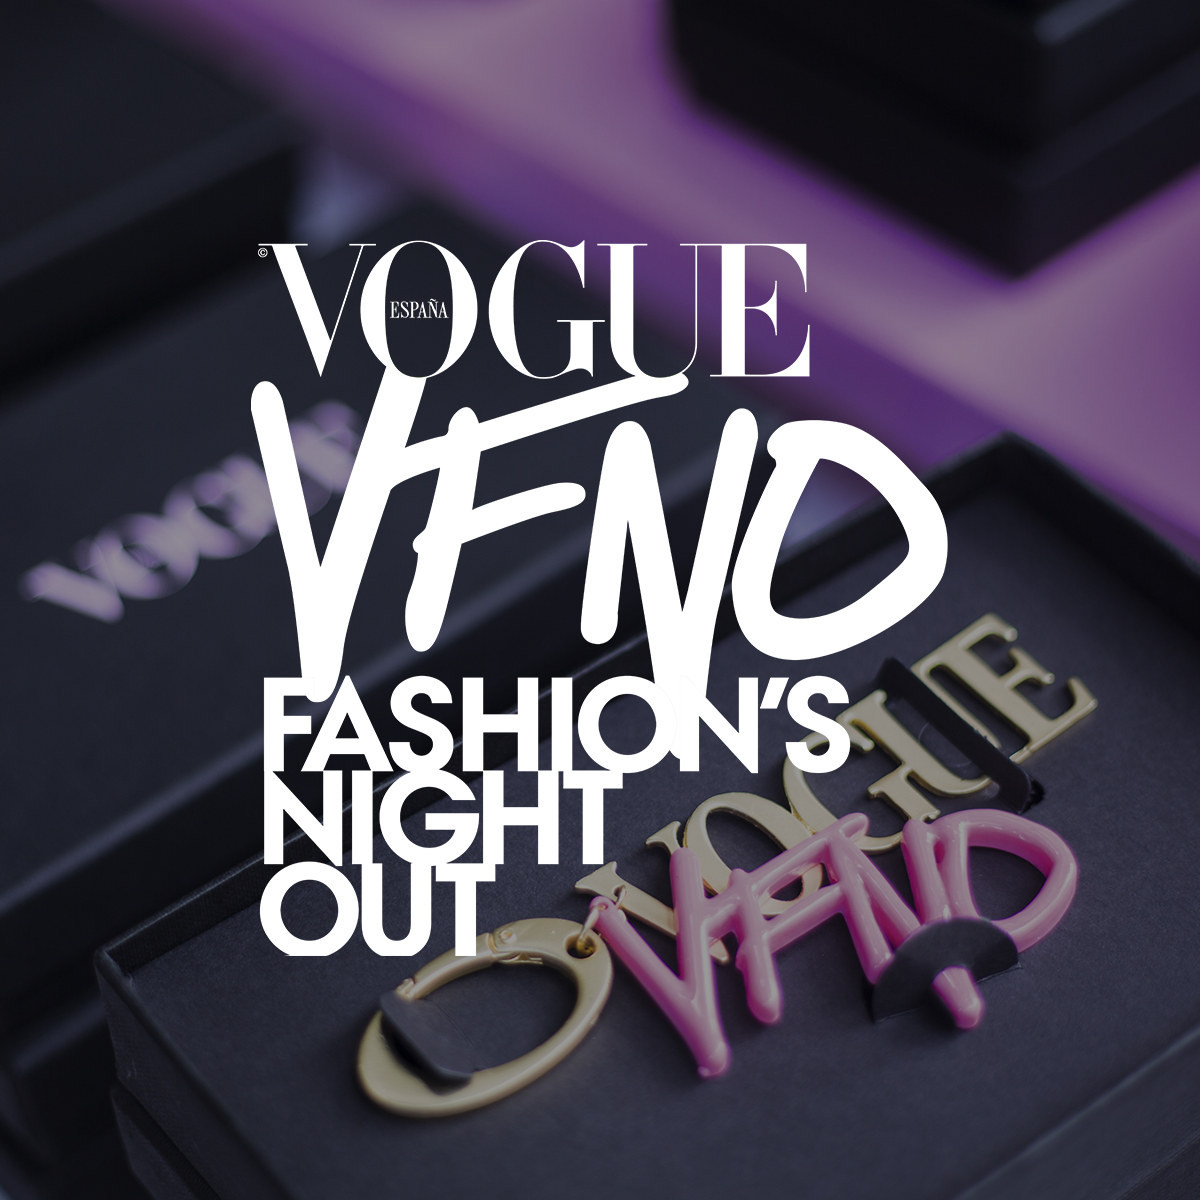 Proyecto Vogue Fashion Night Out